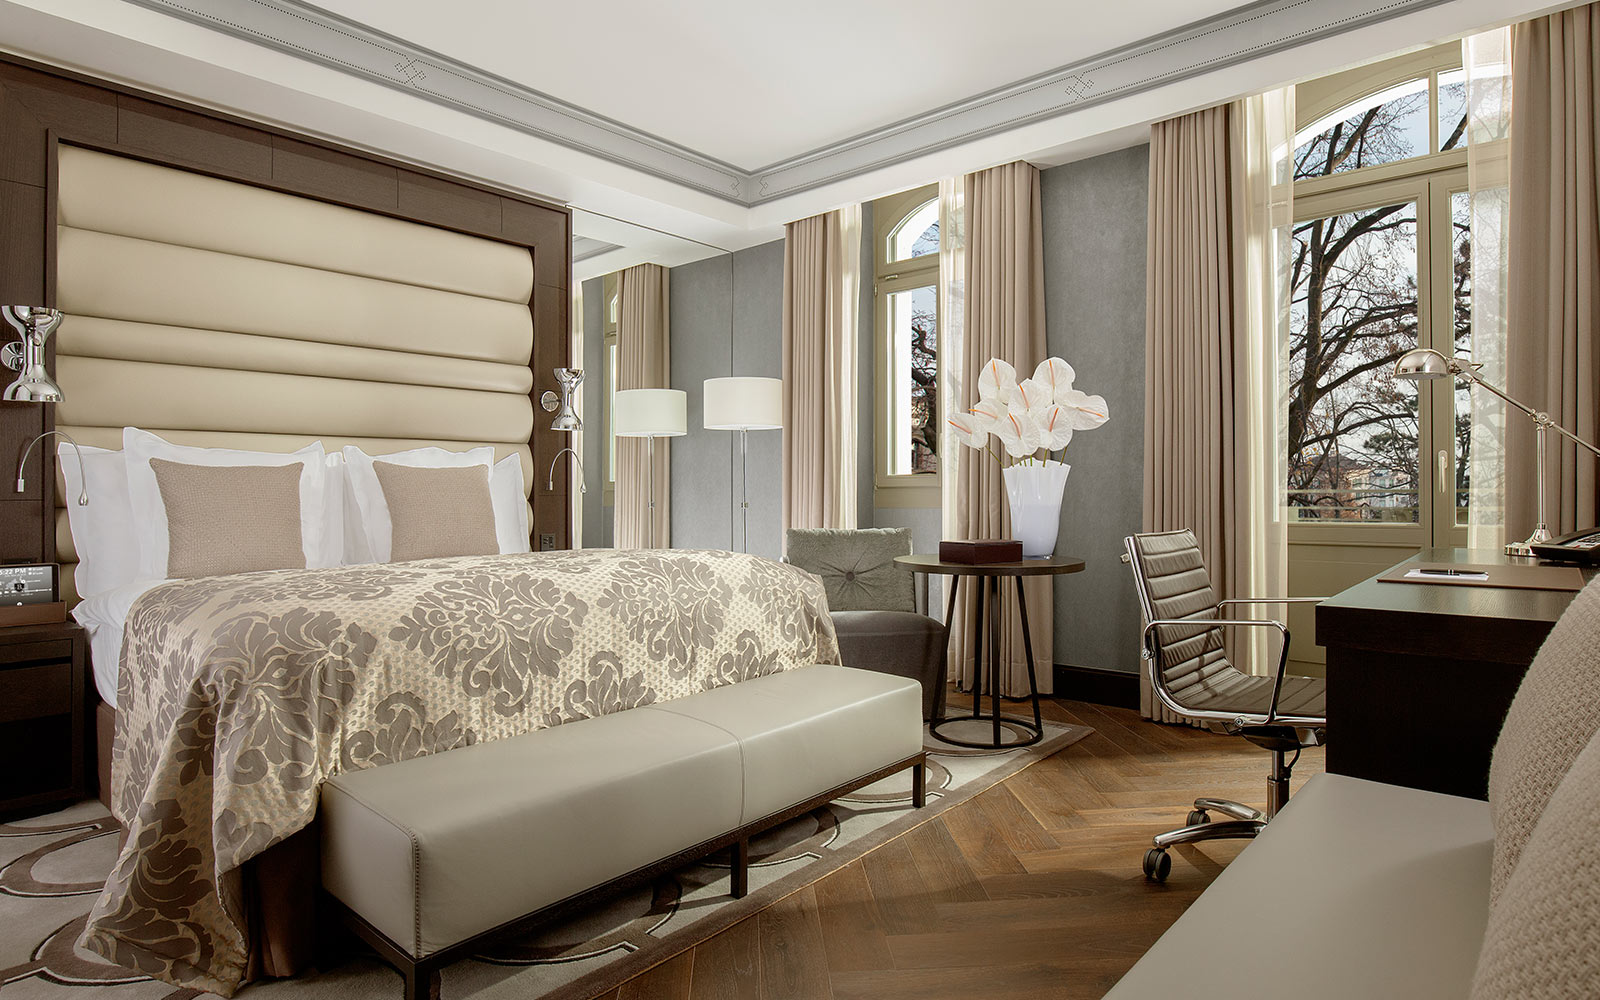 gallery-rooms-and-suites-hotel-lausanne-royal-savoy 01